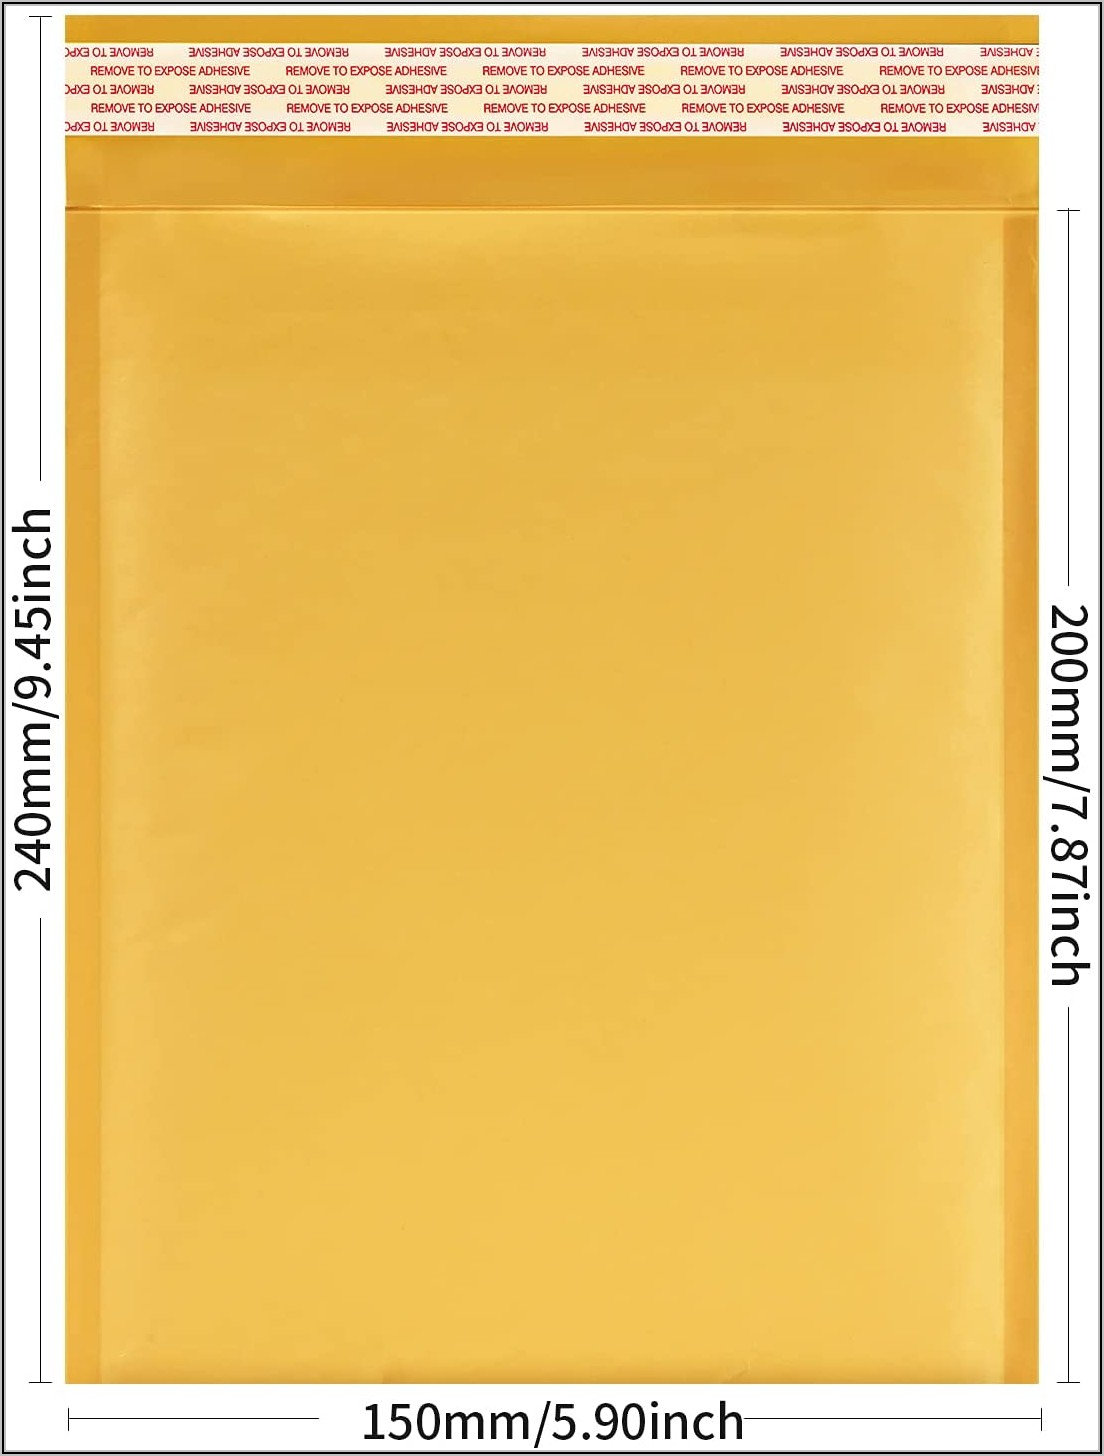 Where Can I Buy Yellow Envelopes